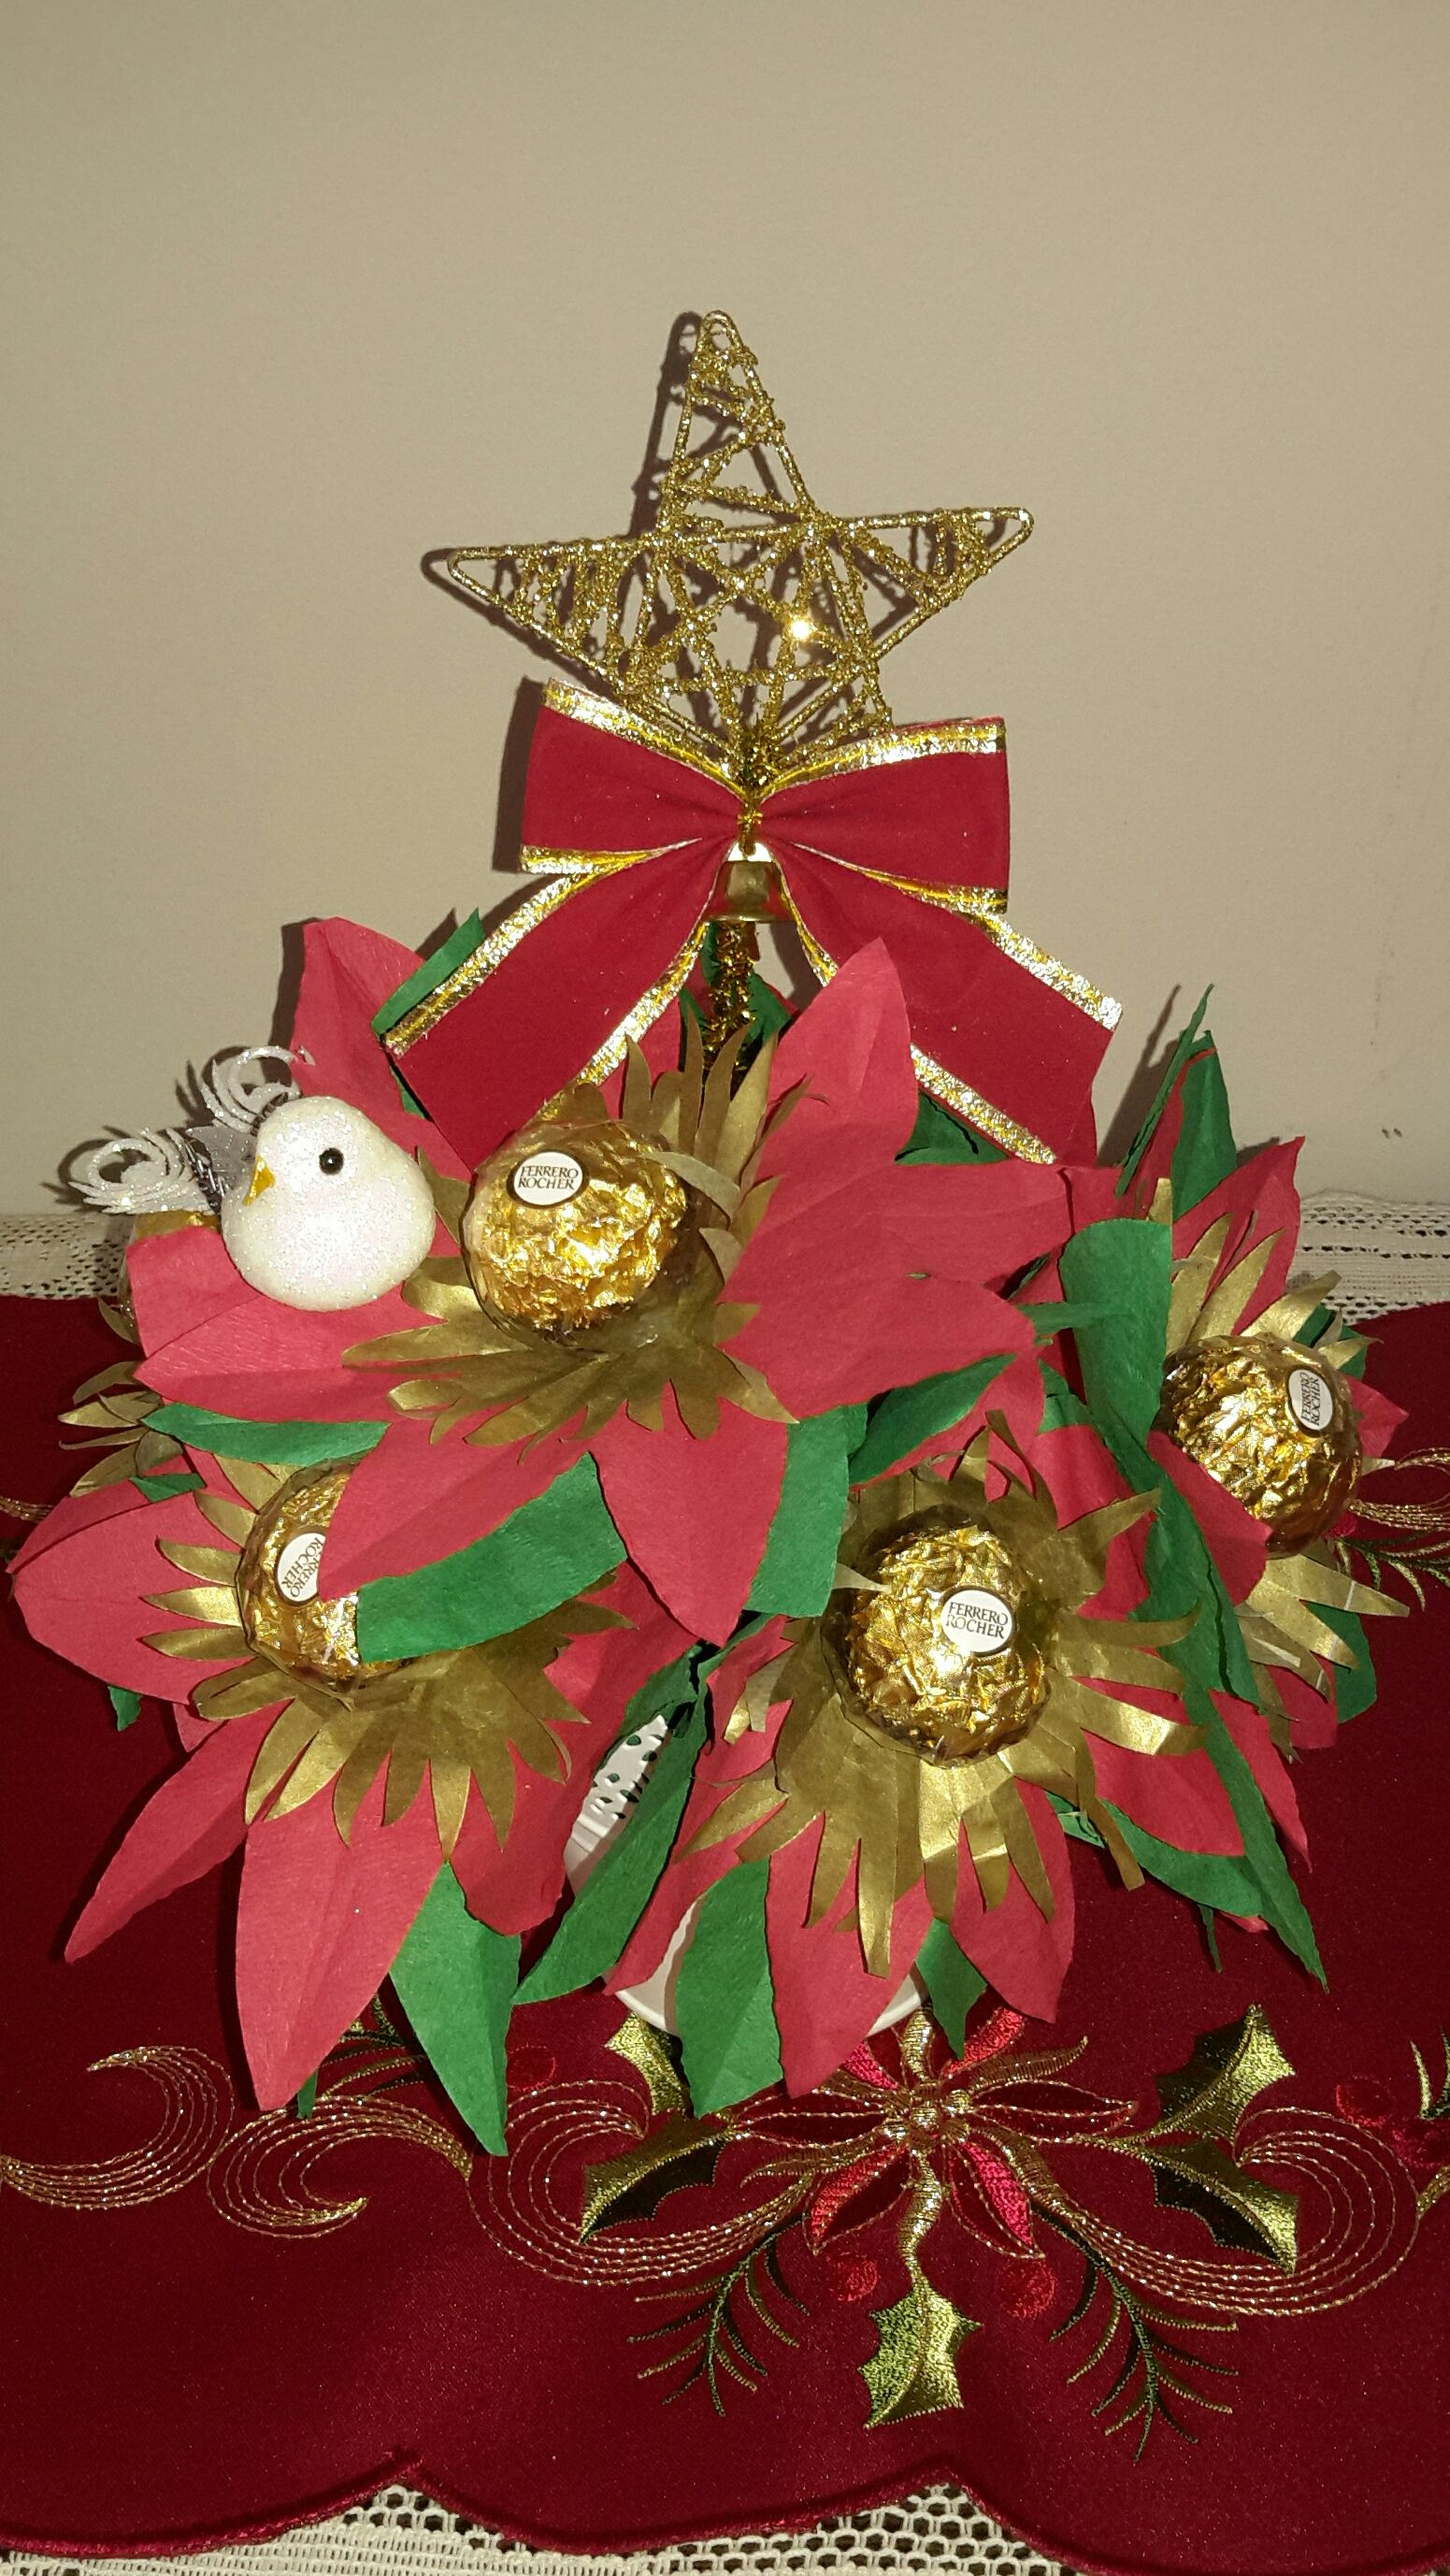 Chocolate bouquet for Christmas